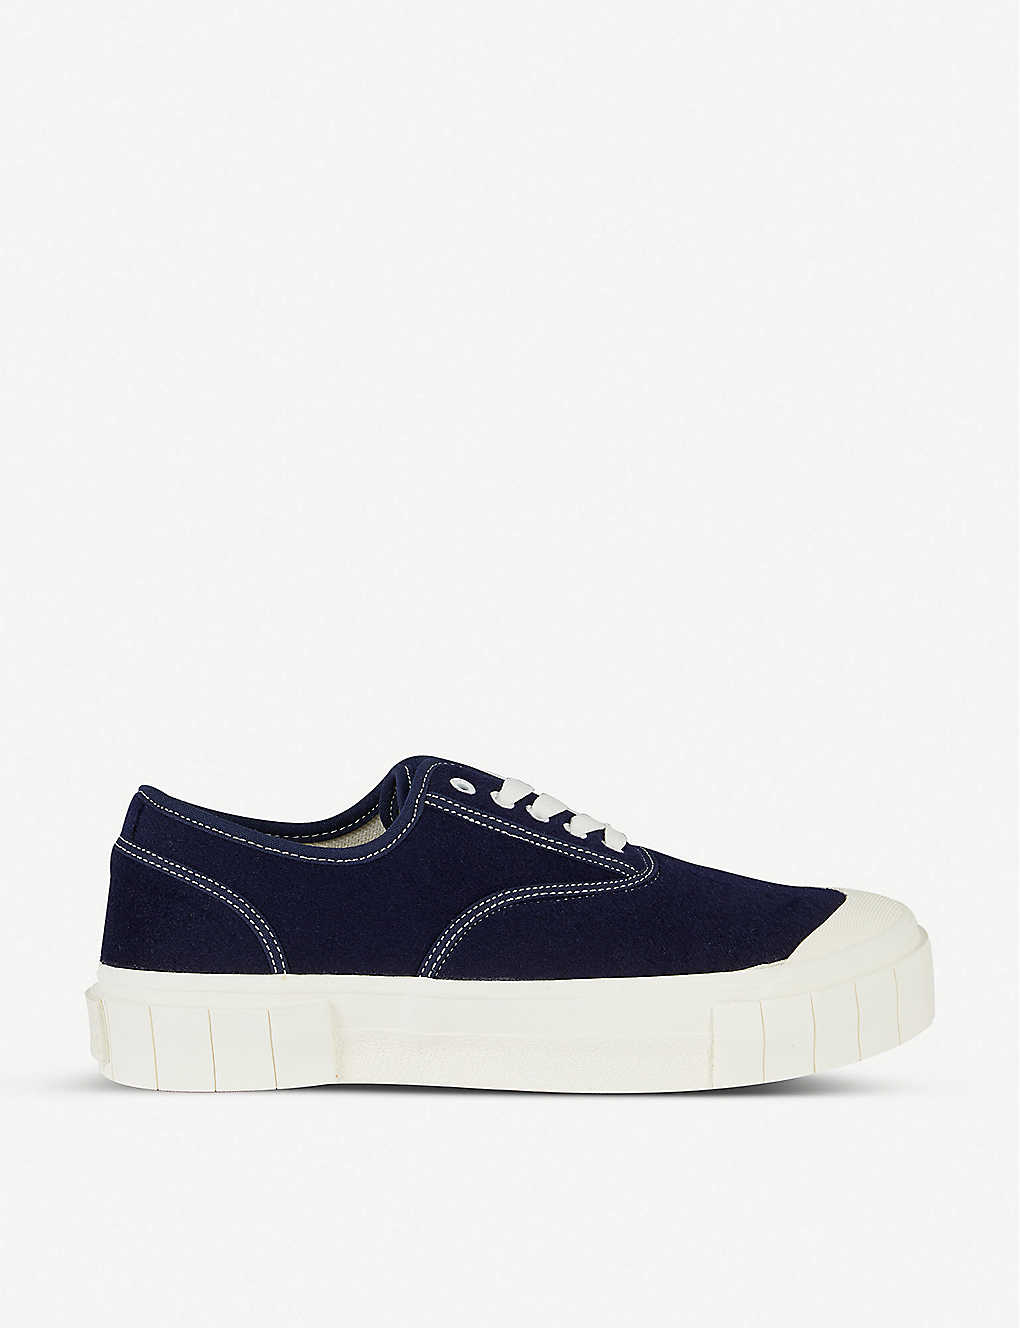 GOOD NEWS: Softball 2 wool low-top trainers